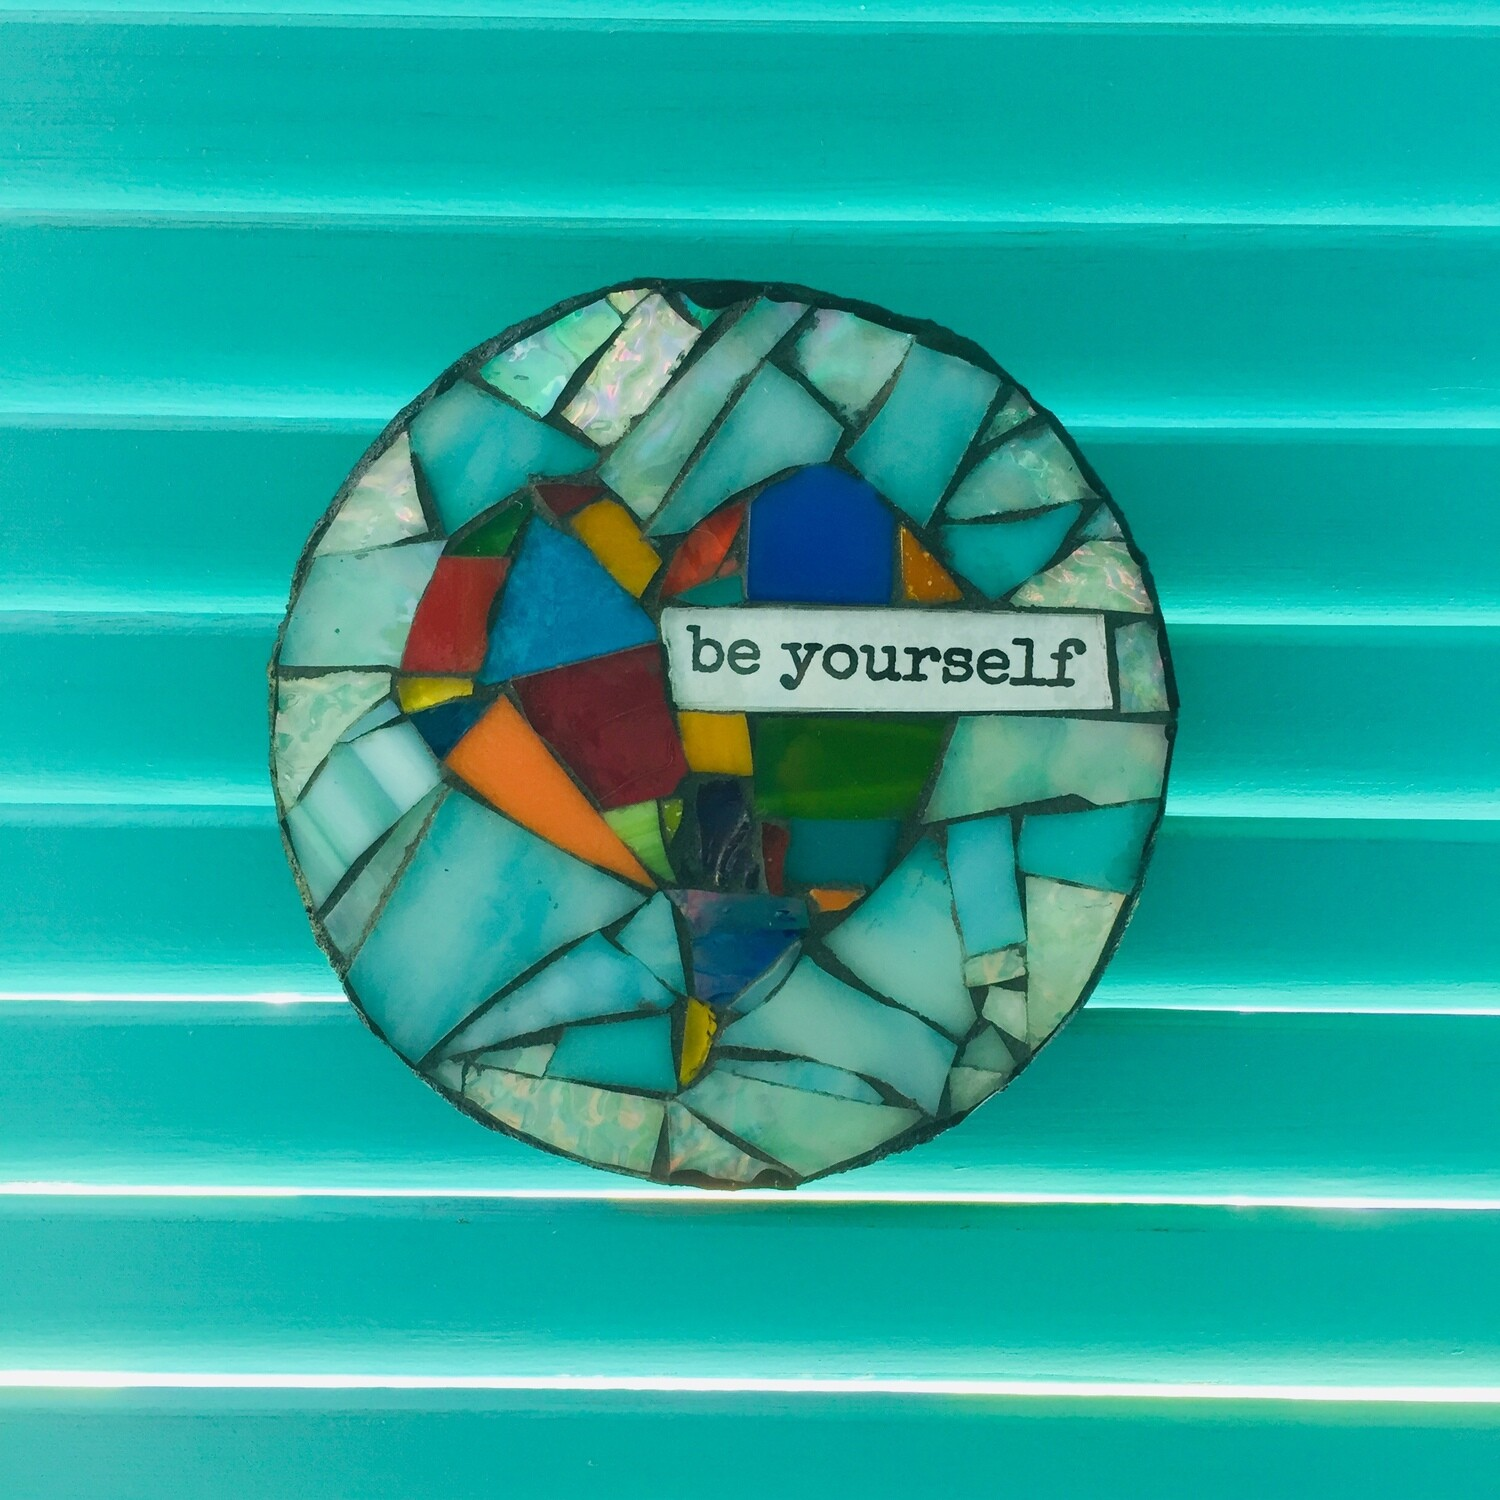 glass mosaic - be yourself